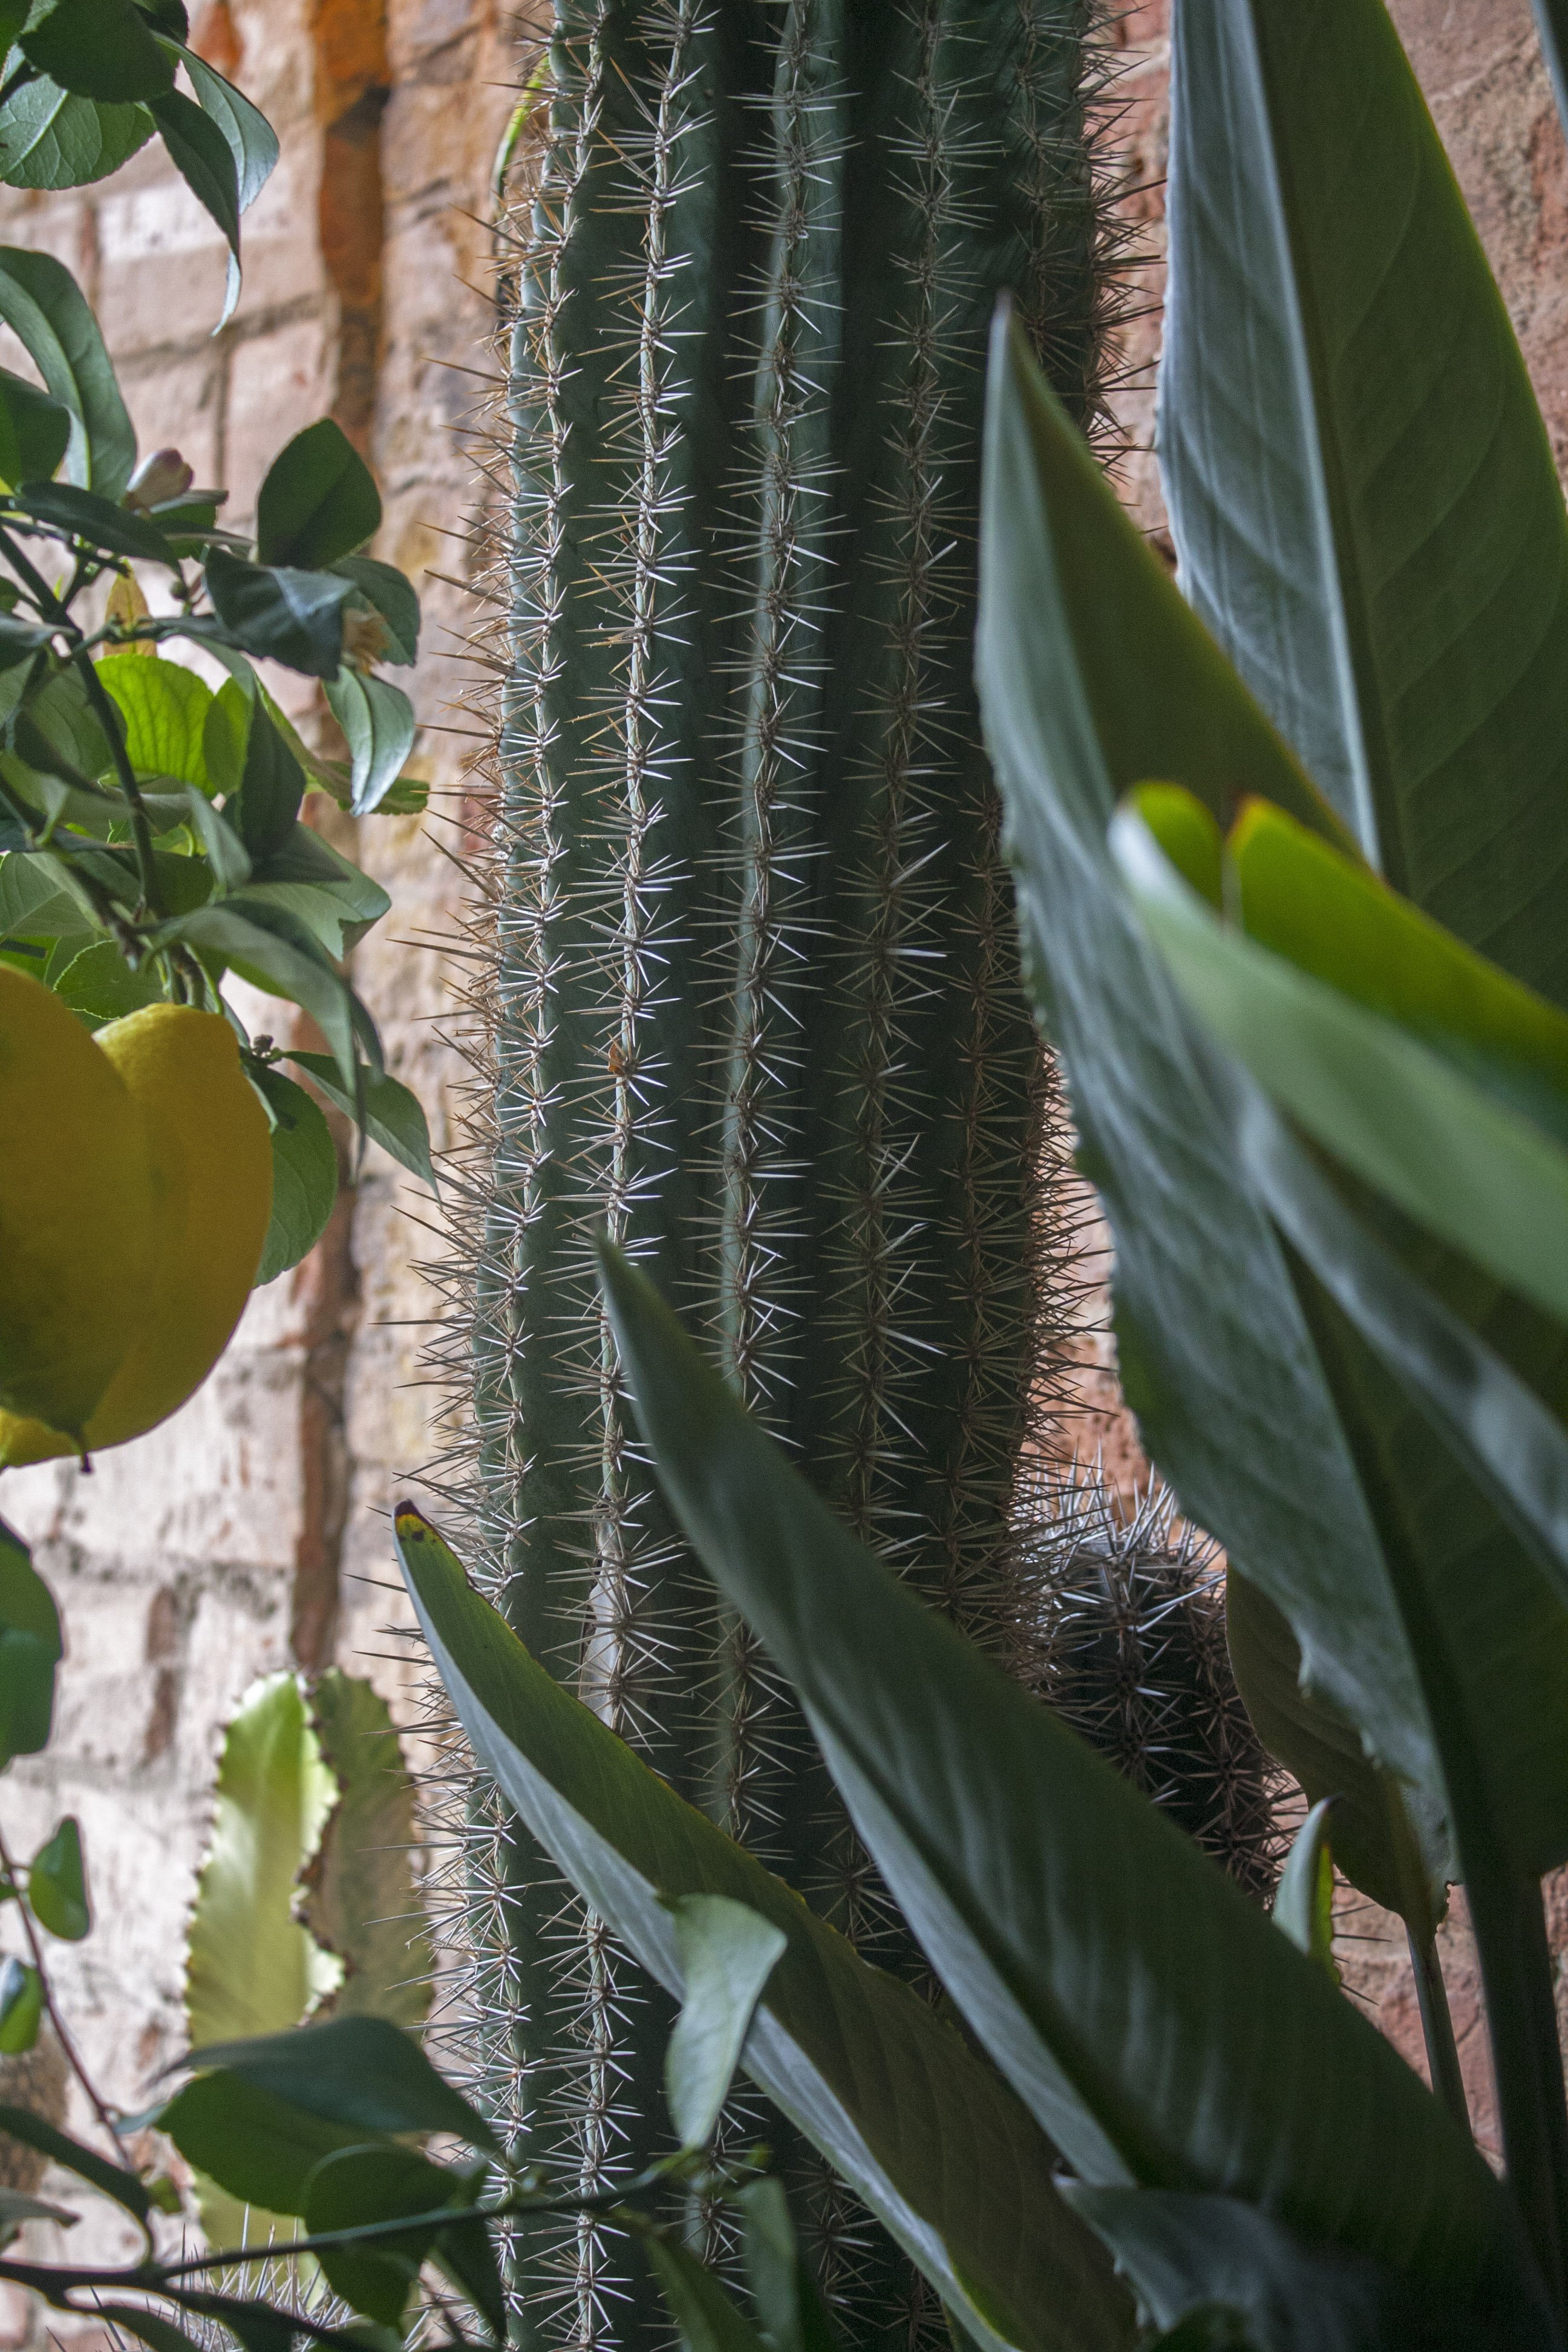 cactus, lemon tree and palm tree in Conservatory Archives Hackney